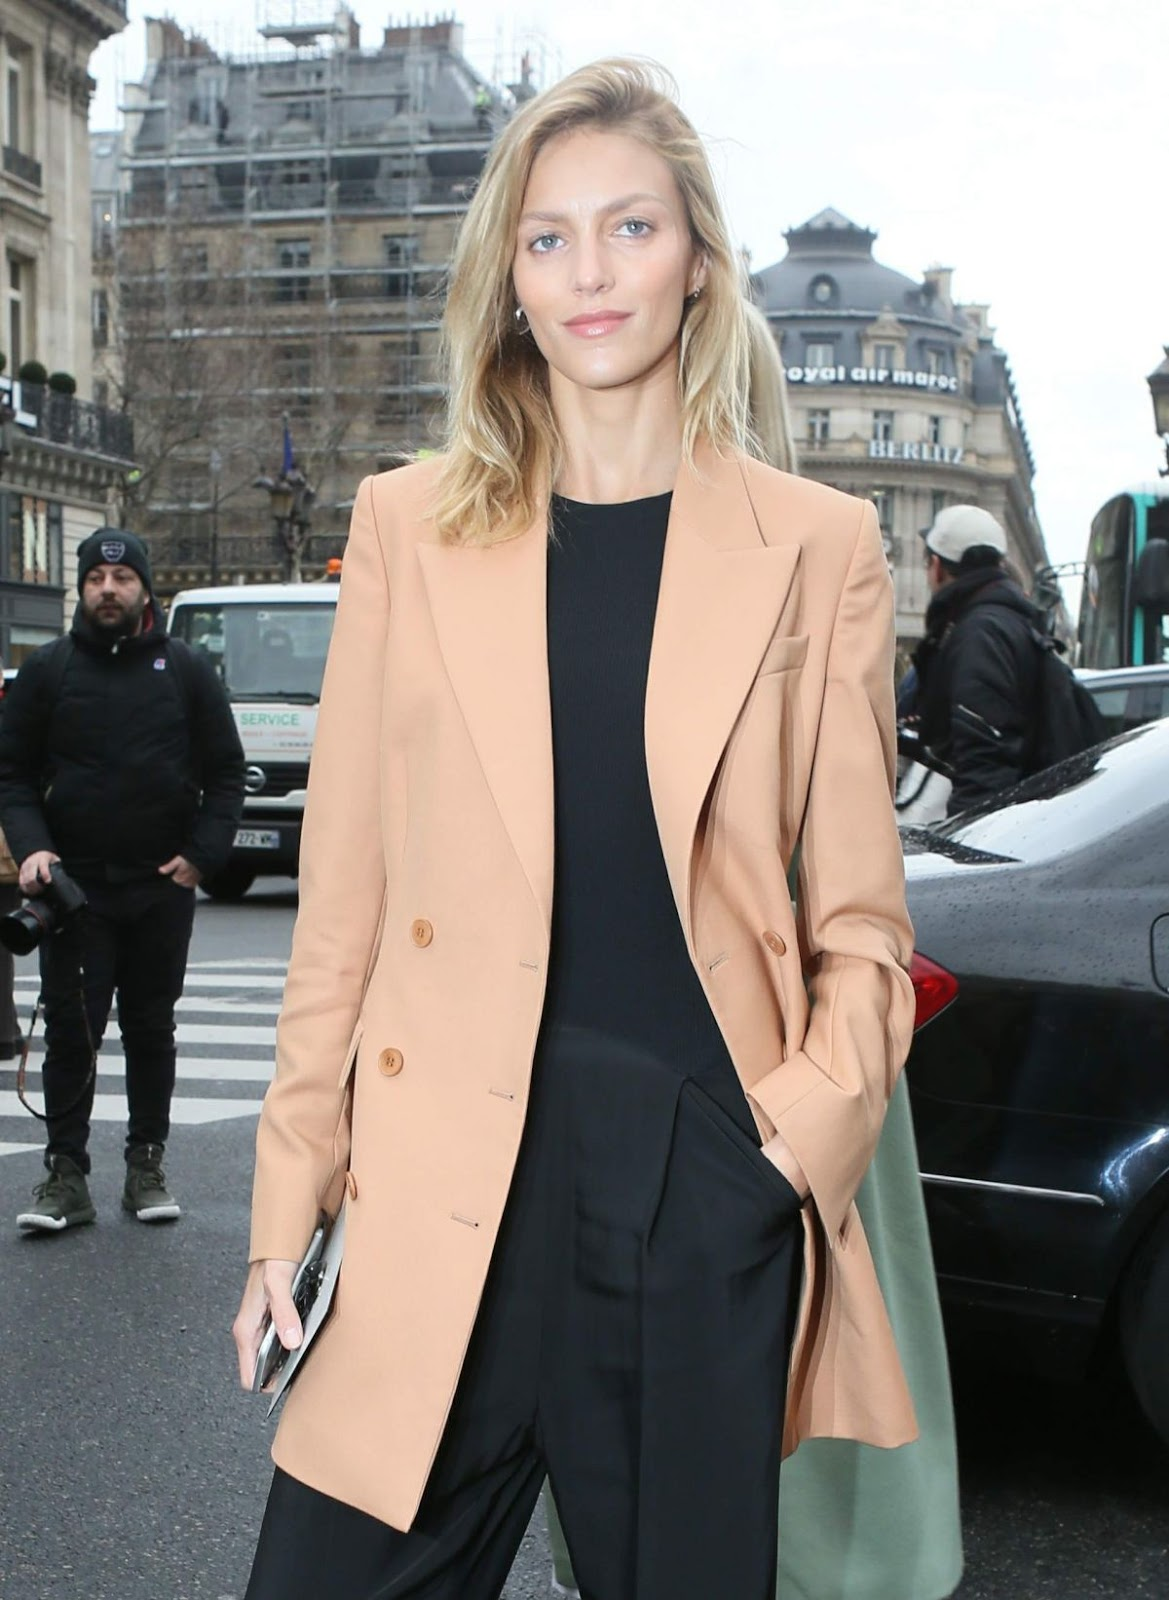 Anja Rubik Wears a Jumpsuit & Camel Coat in Paris